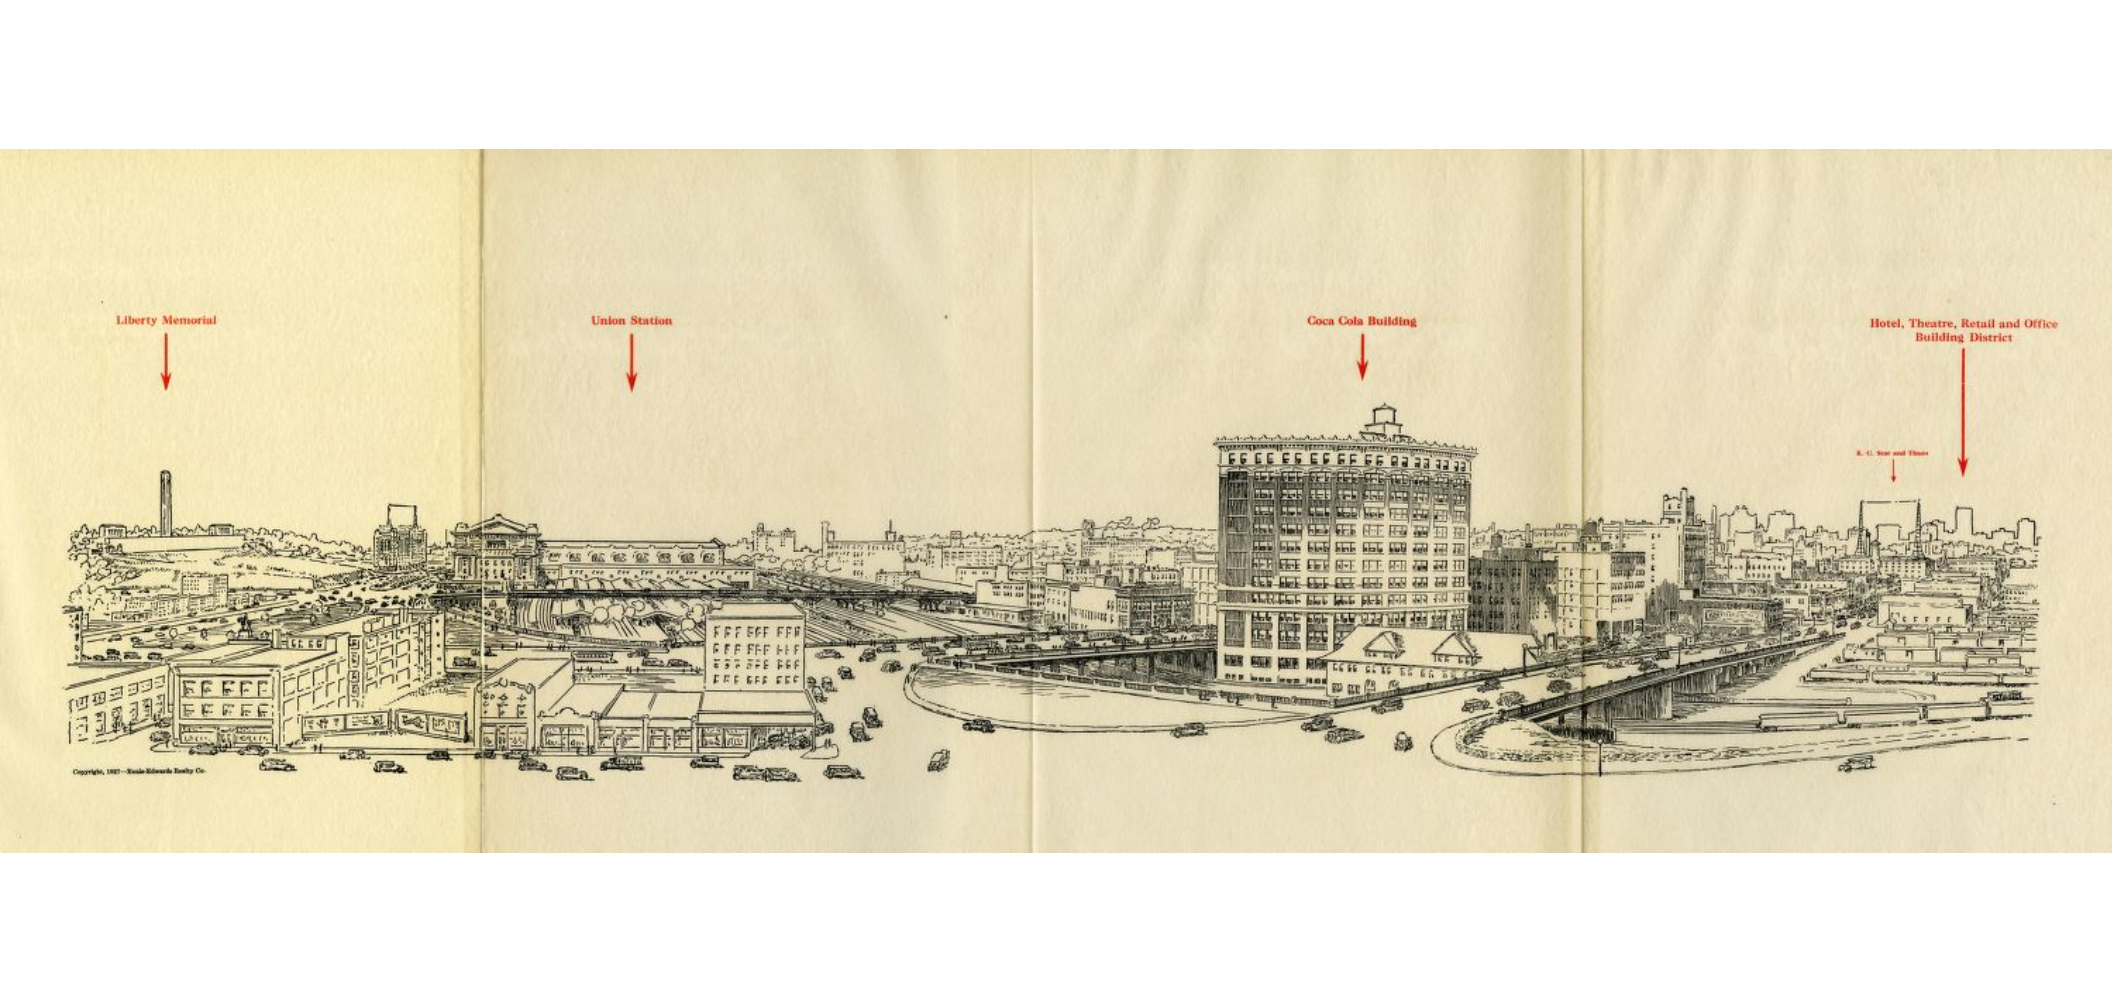 A promotional drawing by Ennis-Edwards Realty Company pinpointed the benefit of its location in proximity to other Kansas City landmarks. (Kansas City Public Library | Missouri Valley Special Collections)